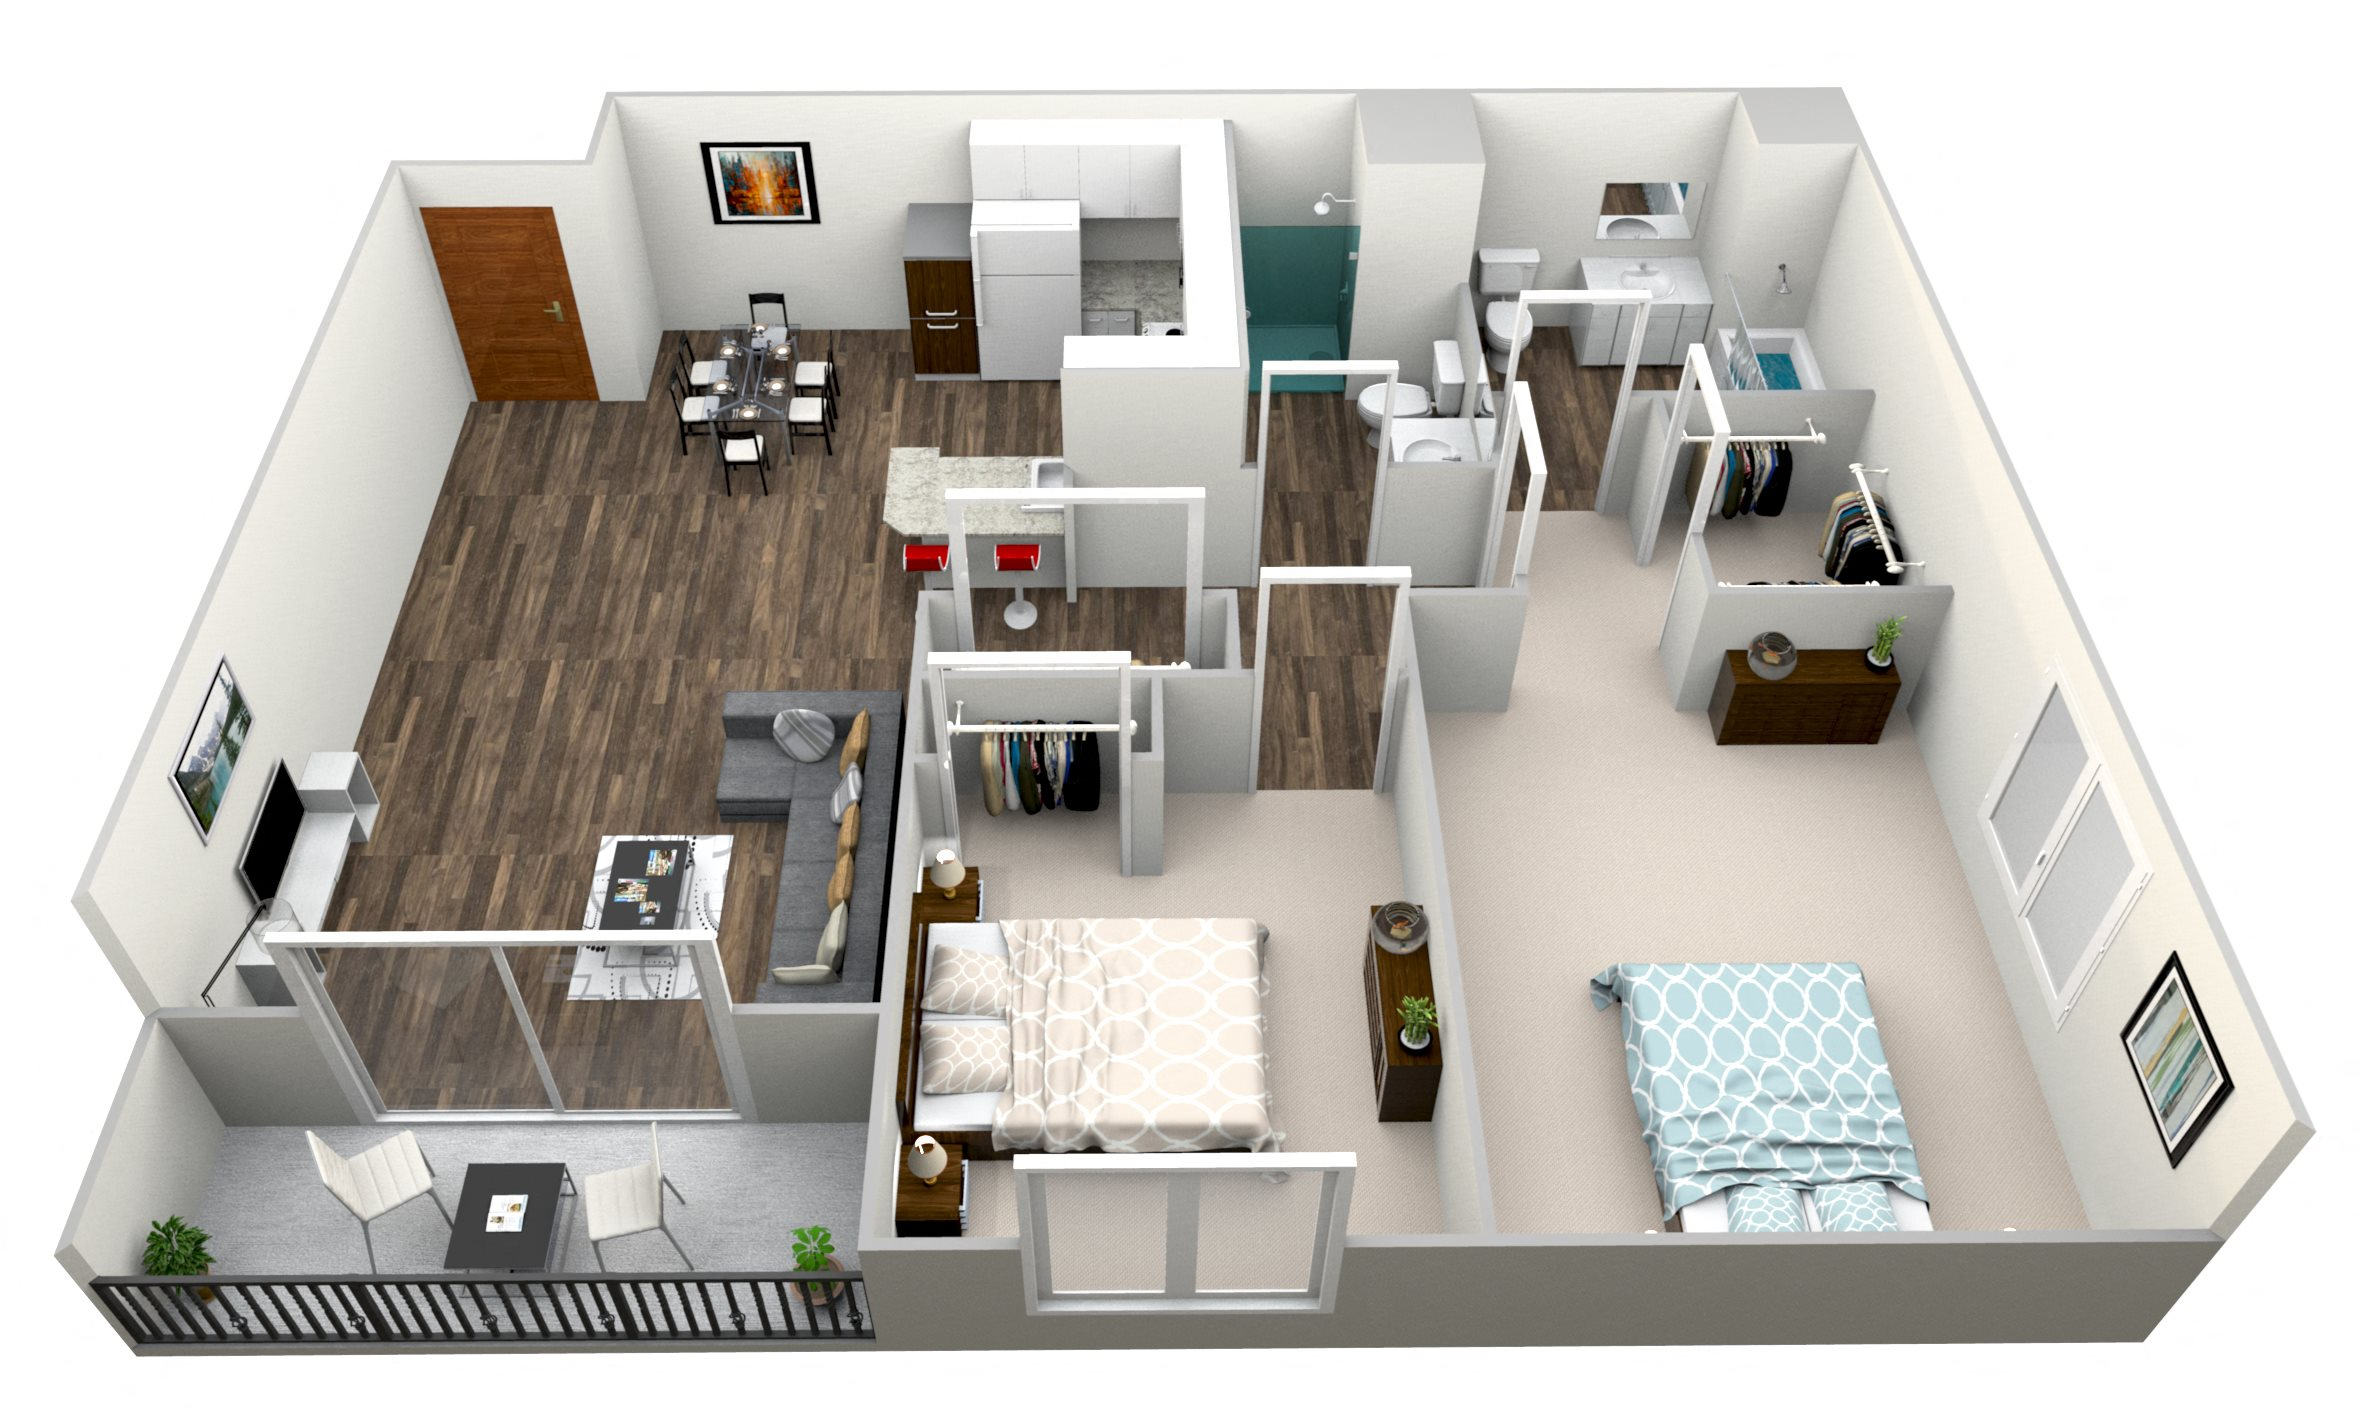 2 Bed 2 Bath C Floor Plan 3